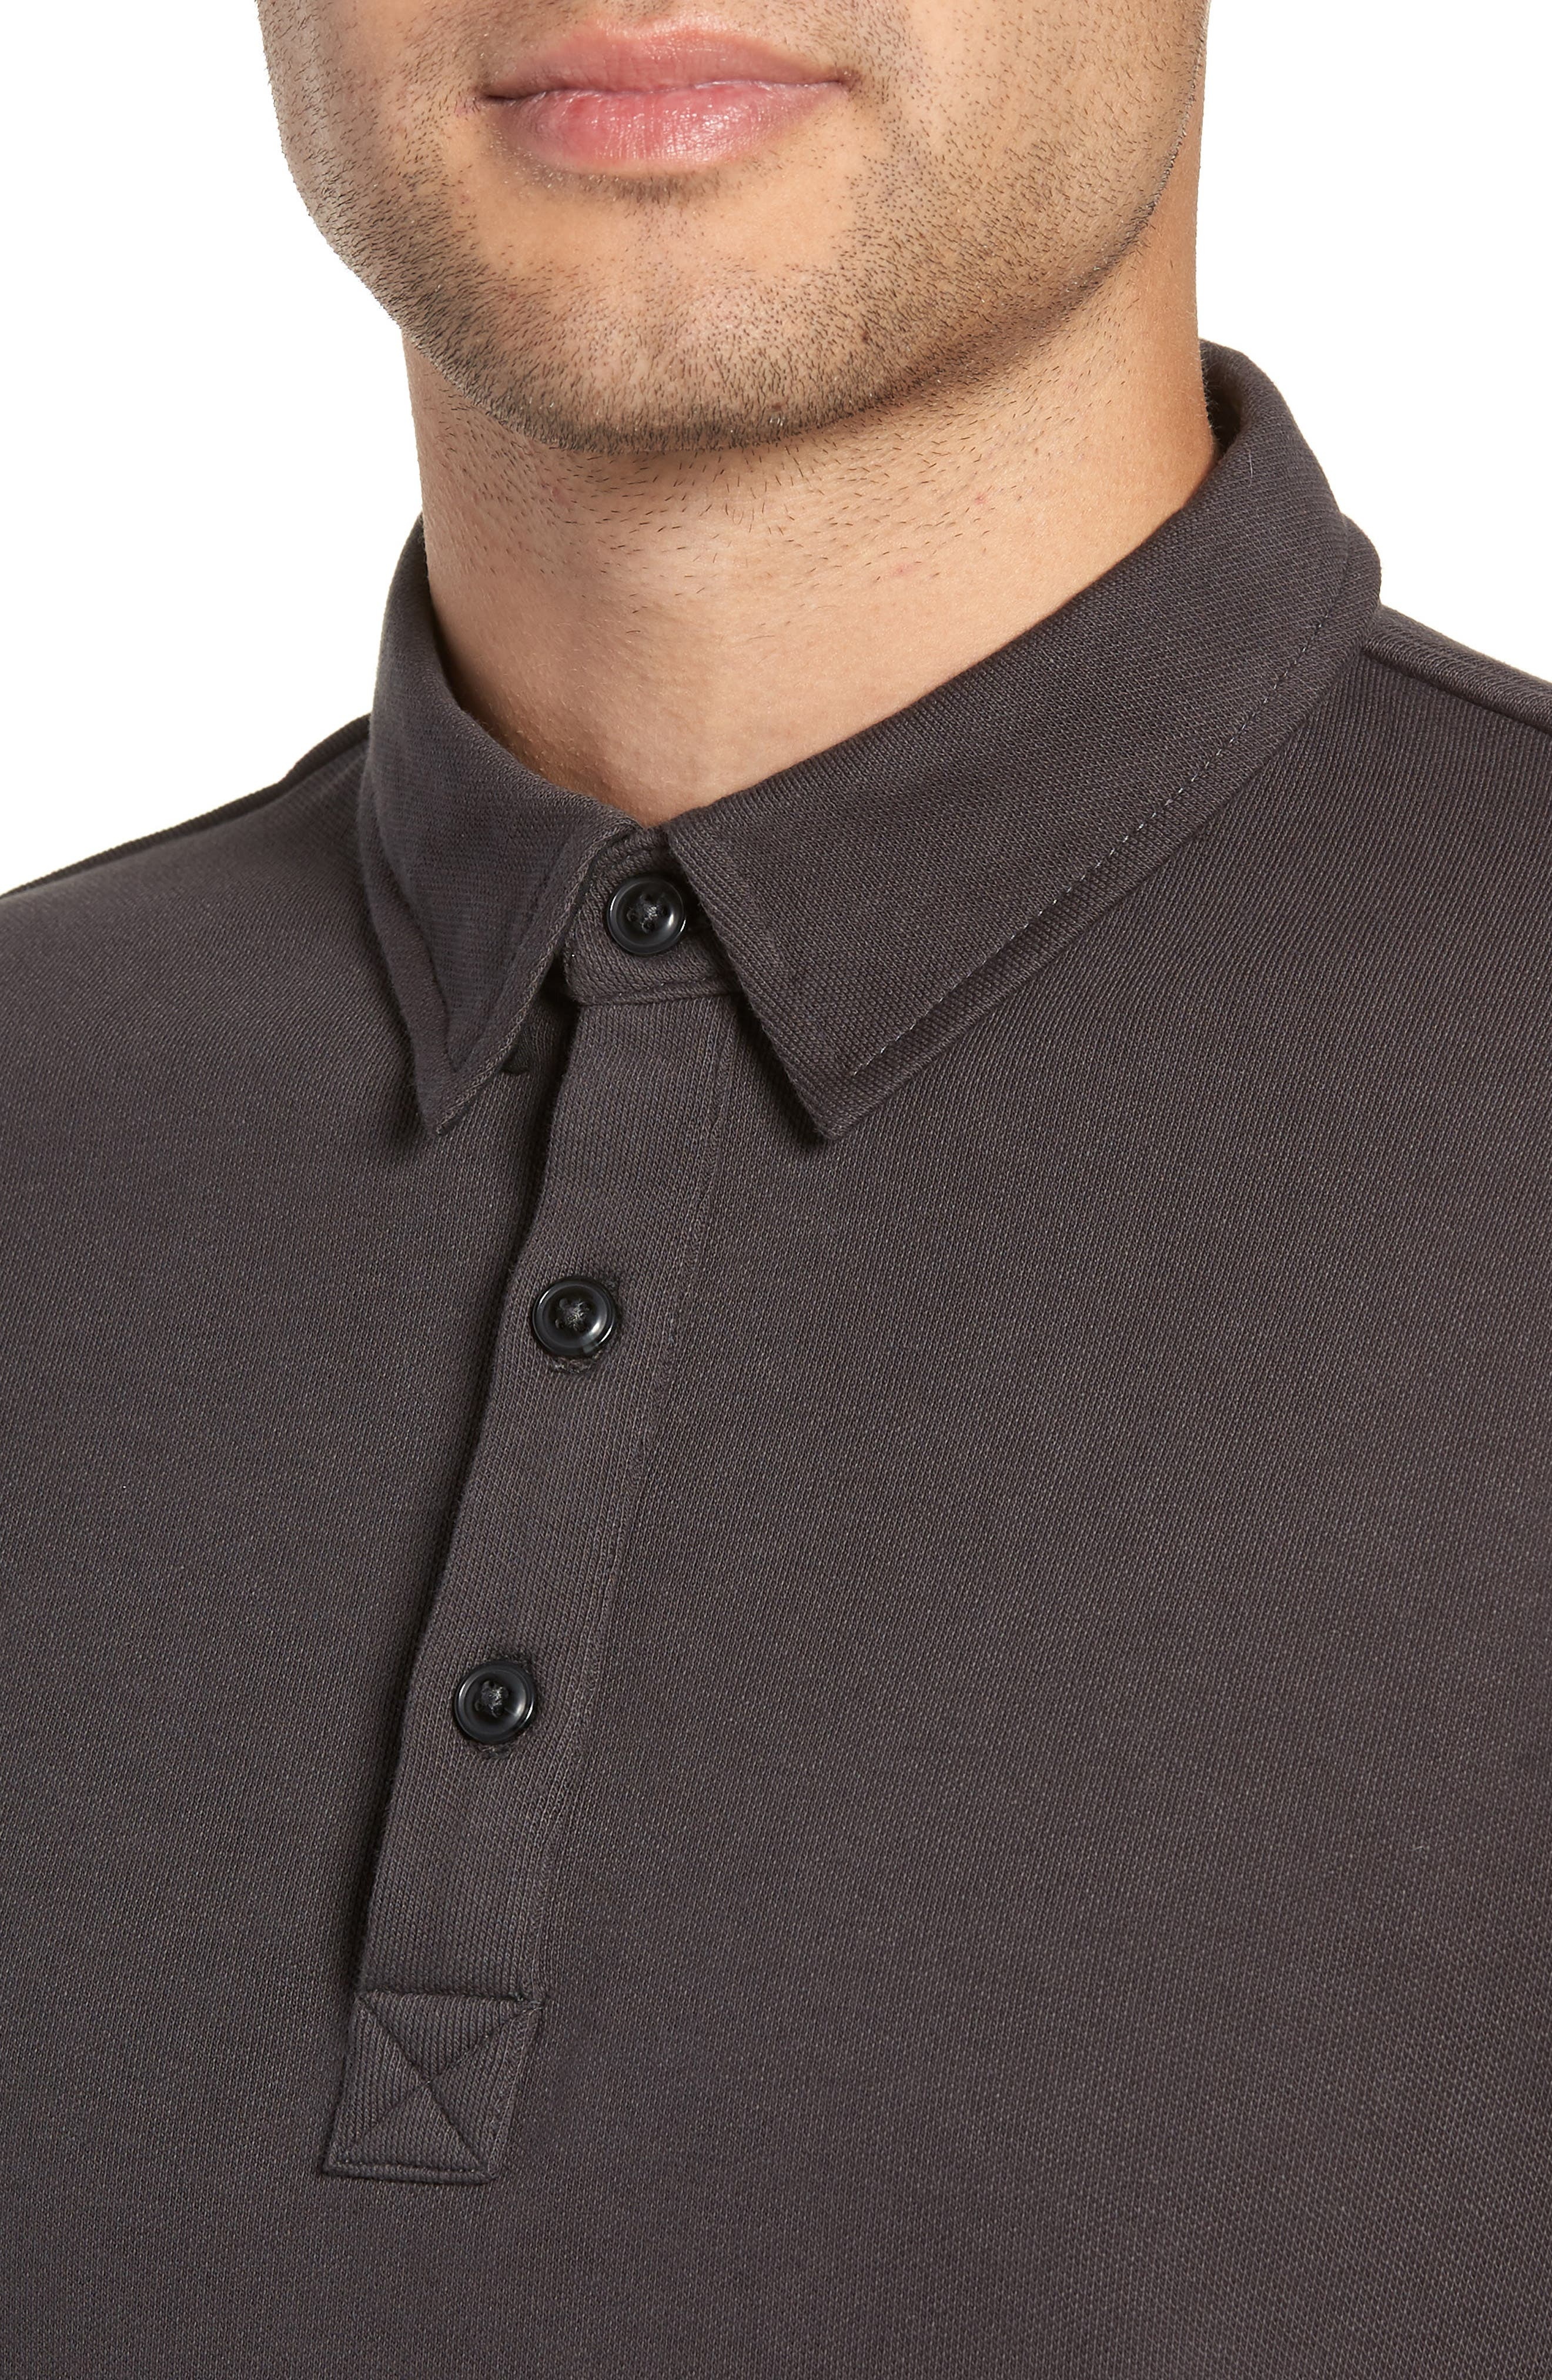 Texture Trim Fit Long Sleeve Polo,                             Alternate thumbnail 4, color,                             081